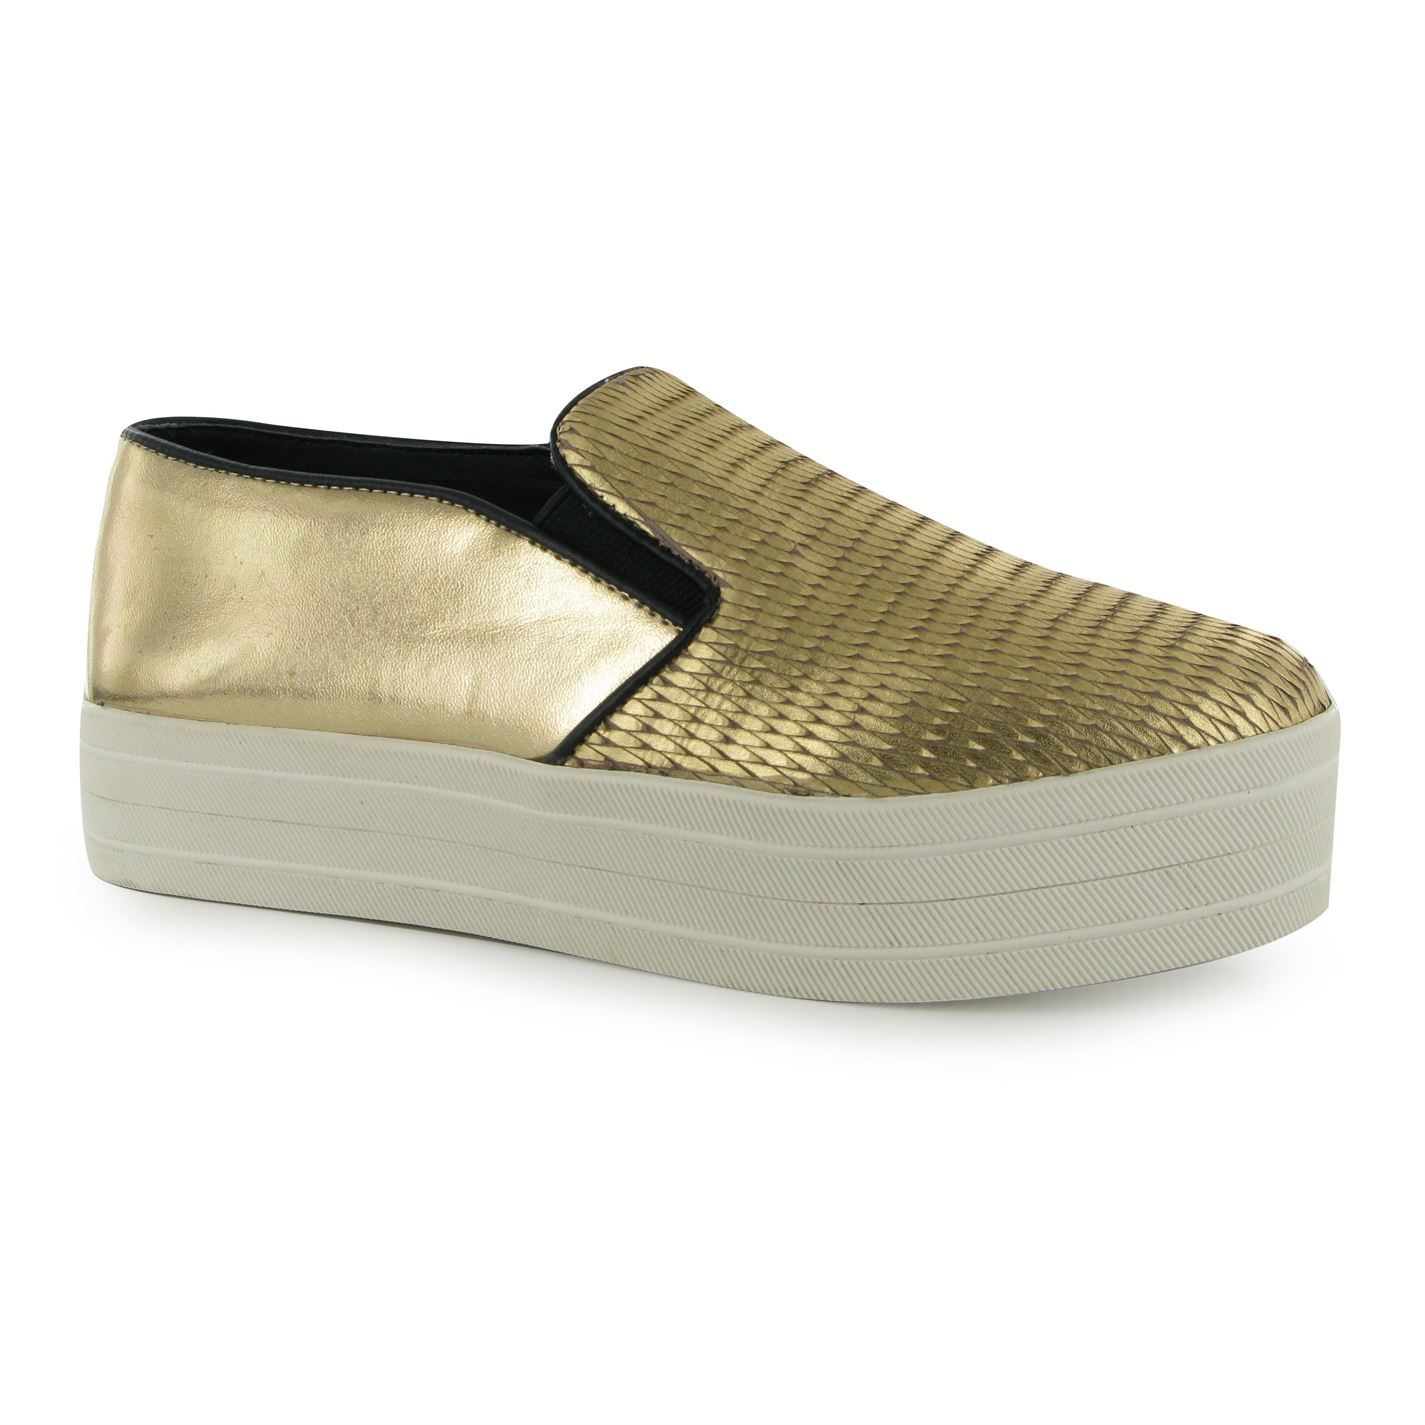 Steve Madden Honsdale Hombre US 7.5 Beis Zapato RnyoIV7